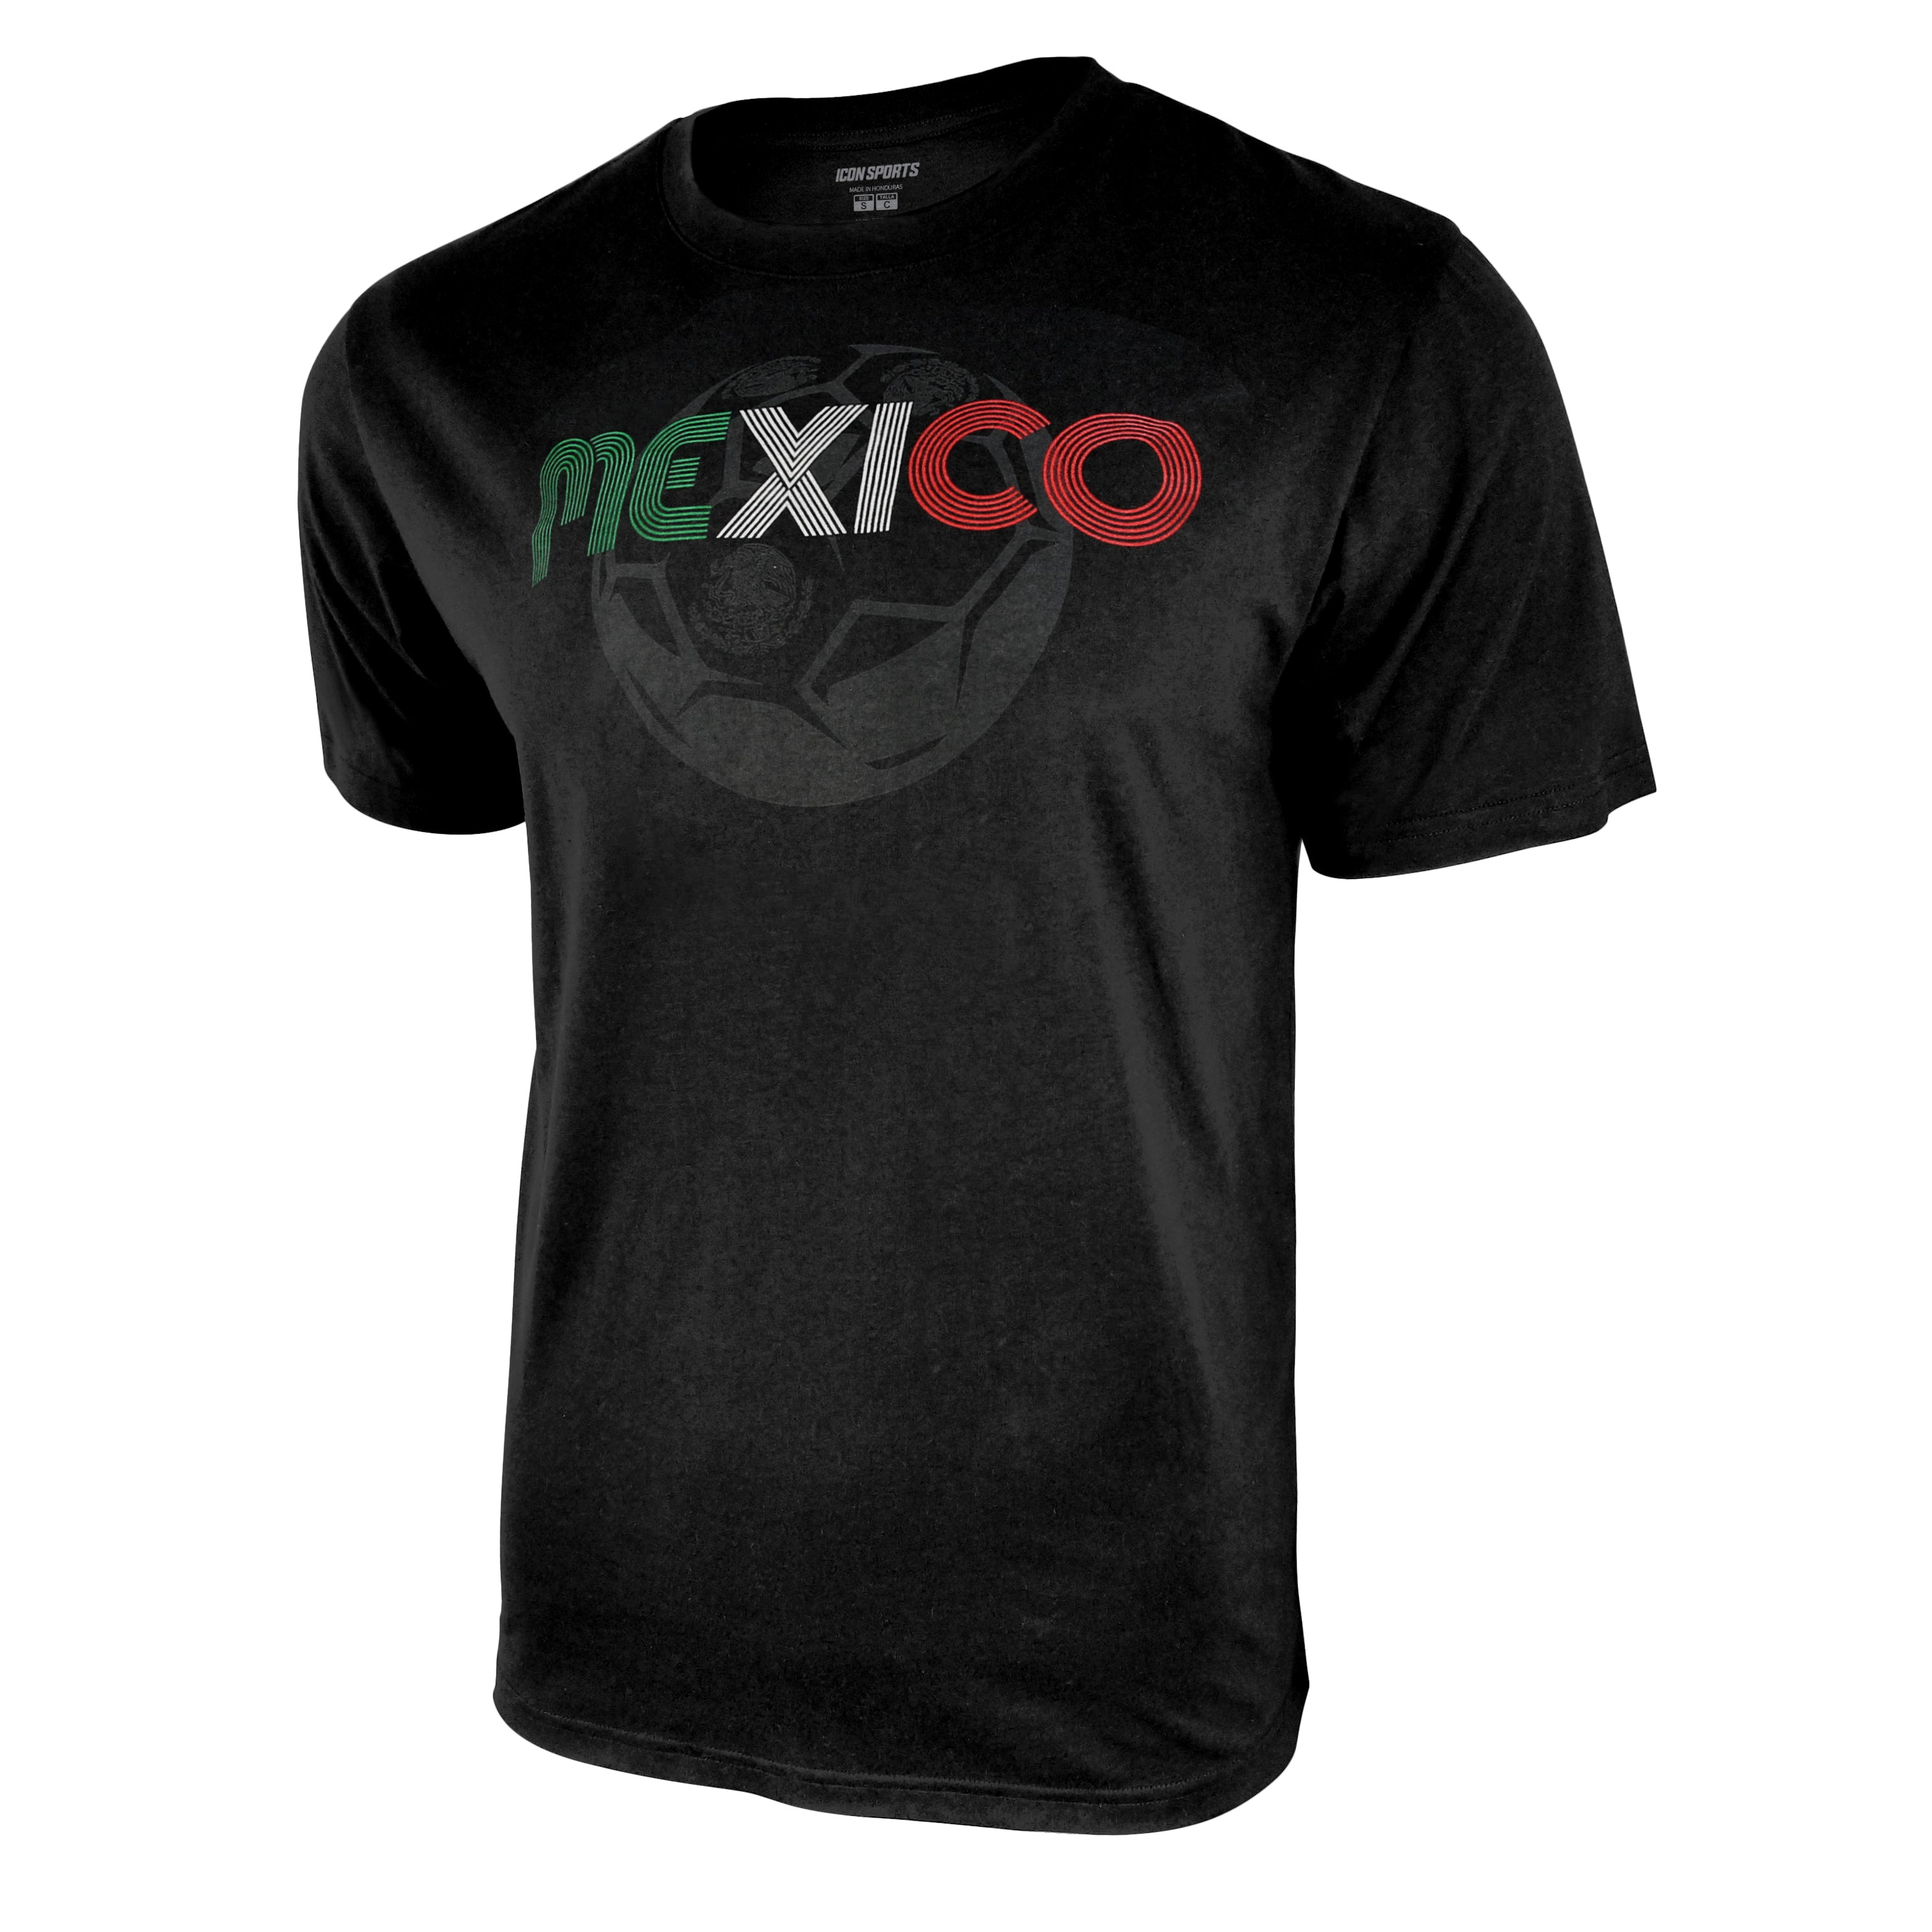 Mexico Adult Unisex Graphic T-Shirt by Icon Sports